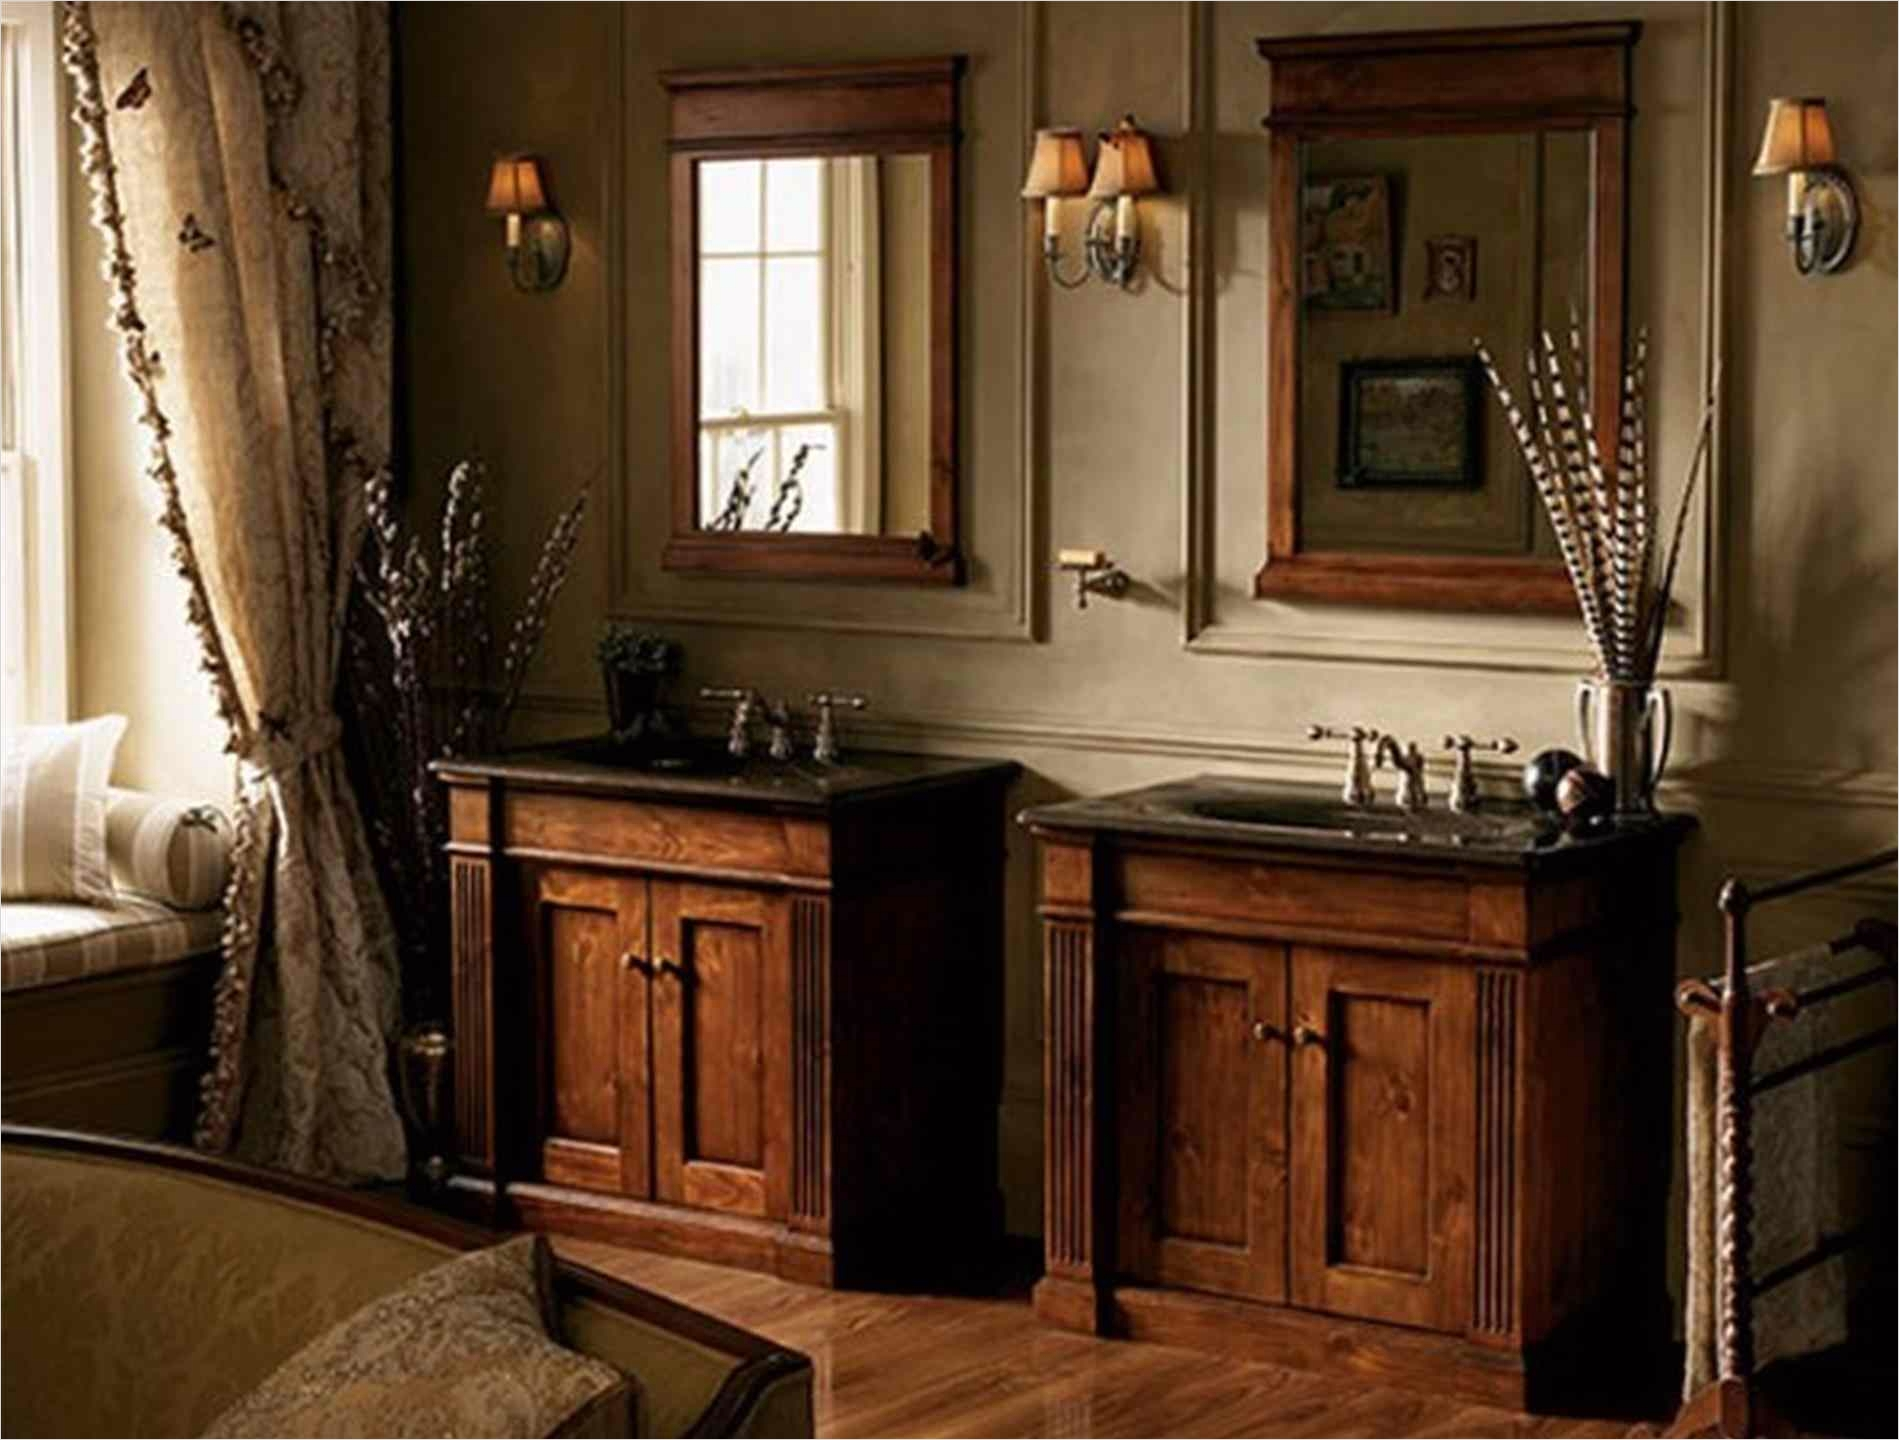 40 Stunning French Country Small Bathroom 78 Cabinets S Rustic French Country Bathroom Design Cabinets Vanities Decor Farmhouse Small Decor 9